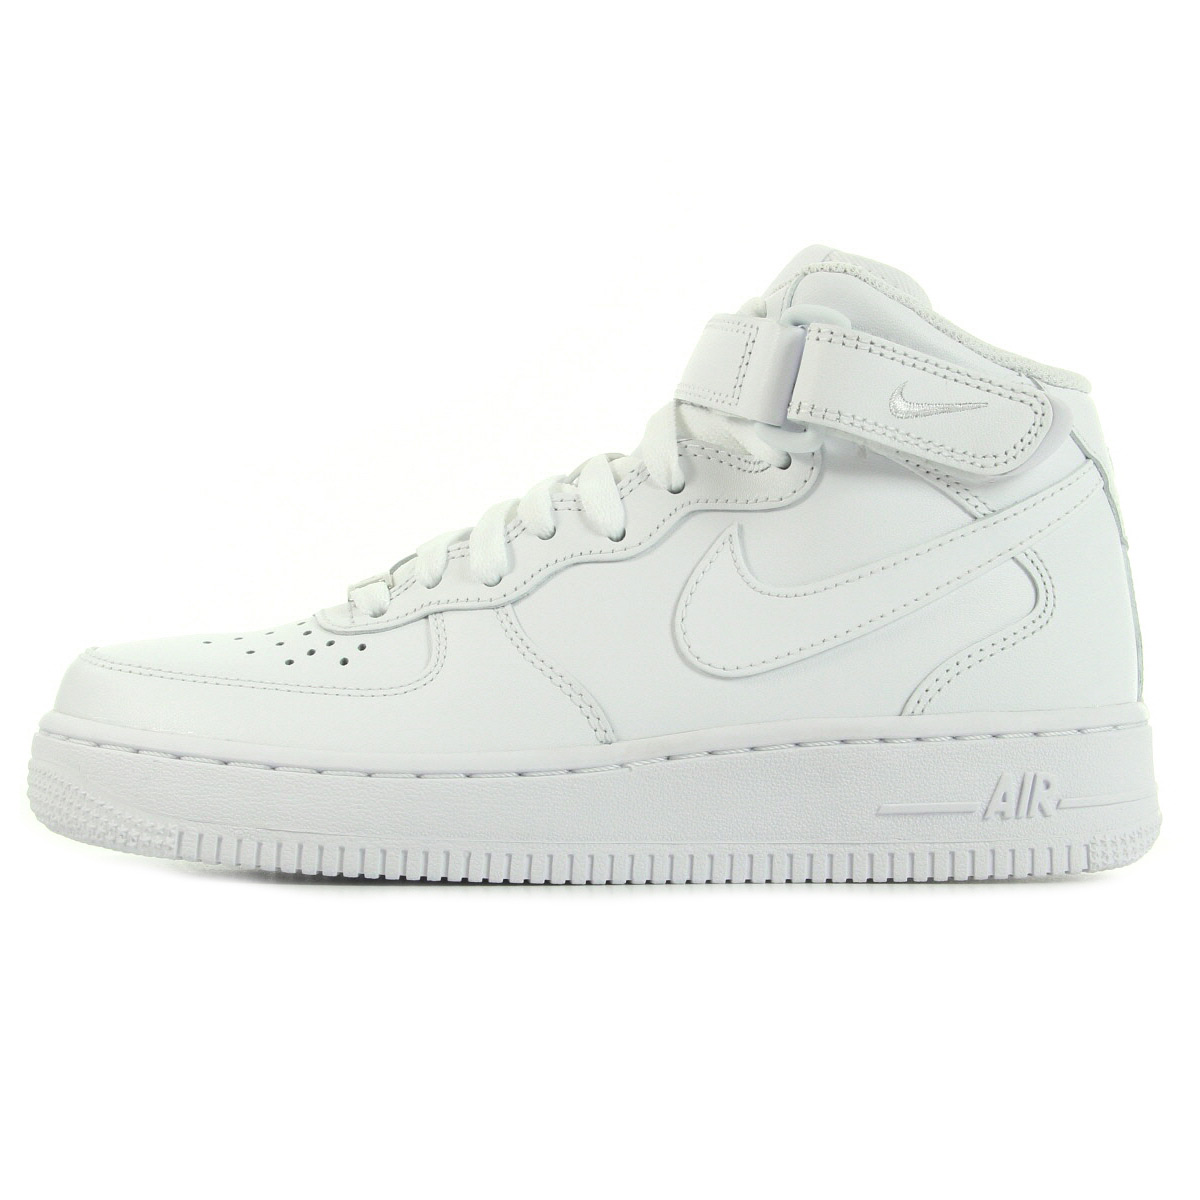 Nike Air Force 1 Mid 07 LE 366731100, Baskets mode femme